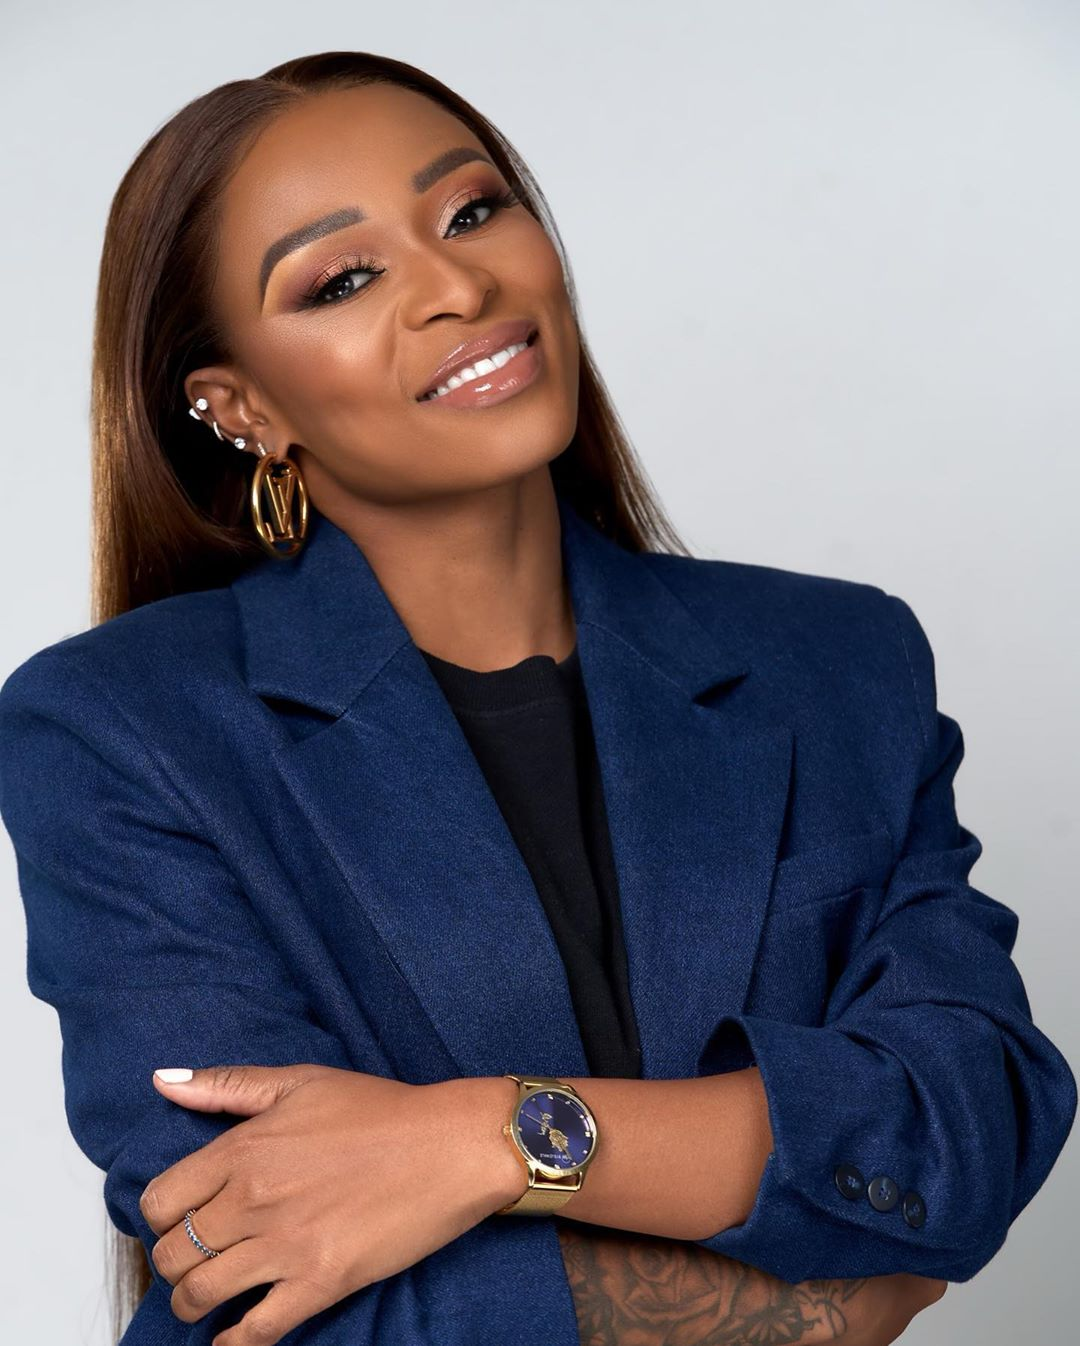 DJ Zinhle Acquires Equity In Wine Brand And Takes Over As CEO